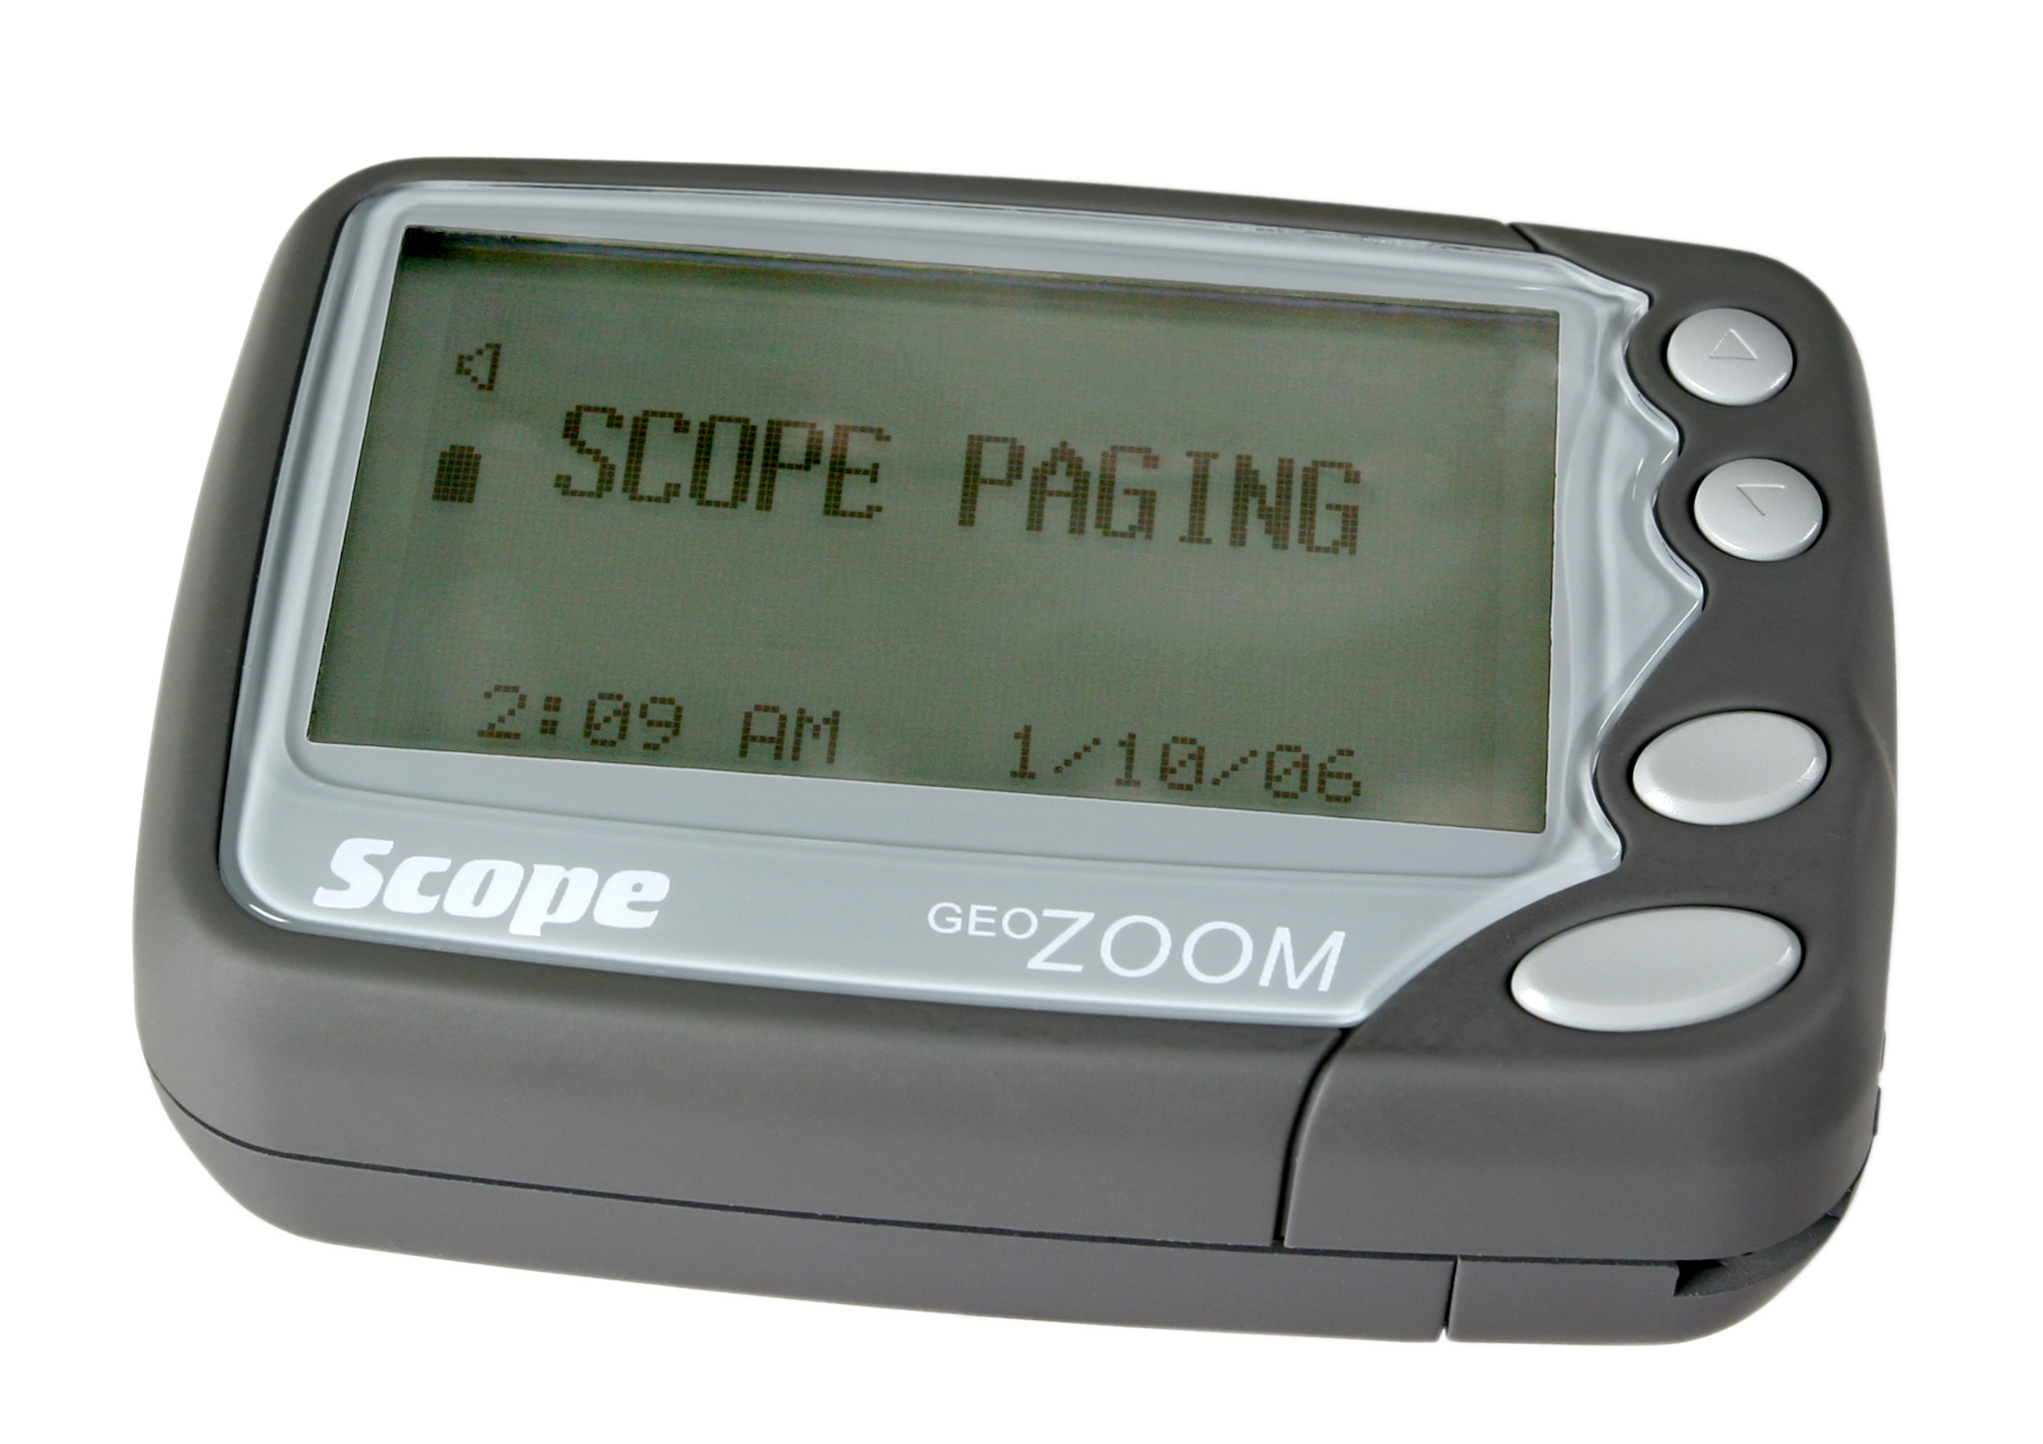 GEO Zoom rechargeable pager